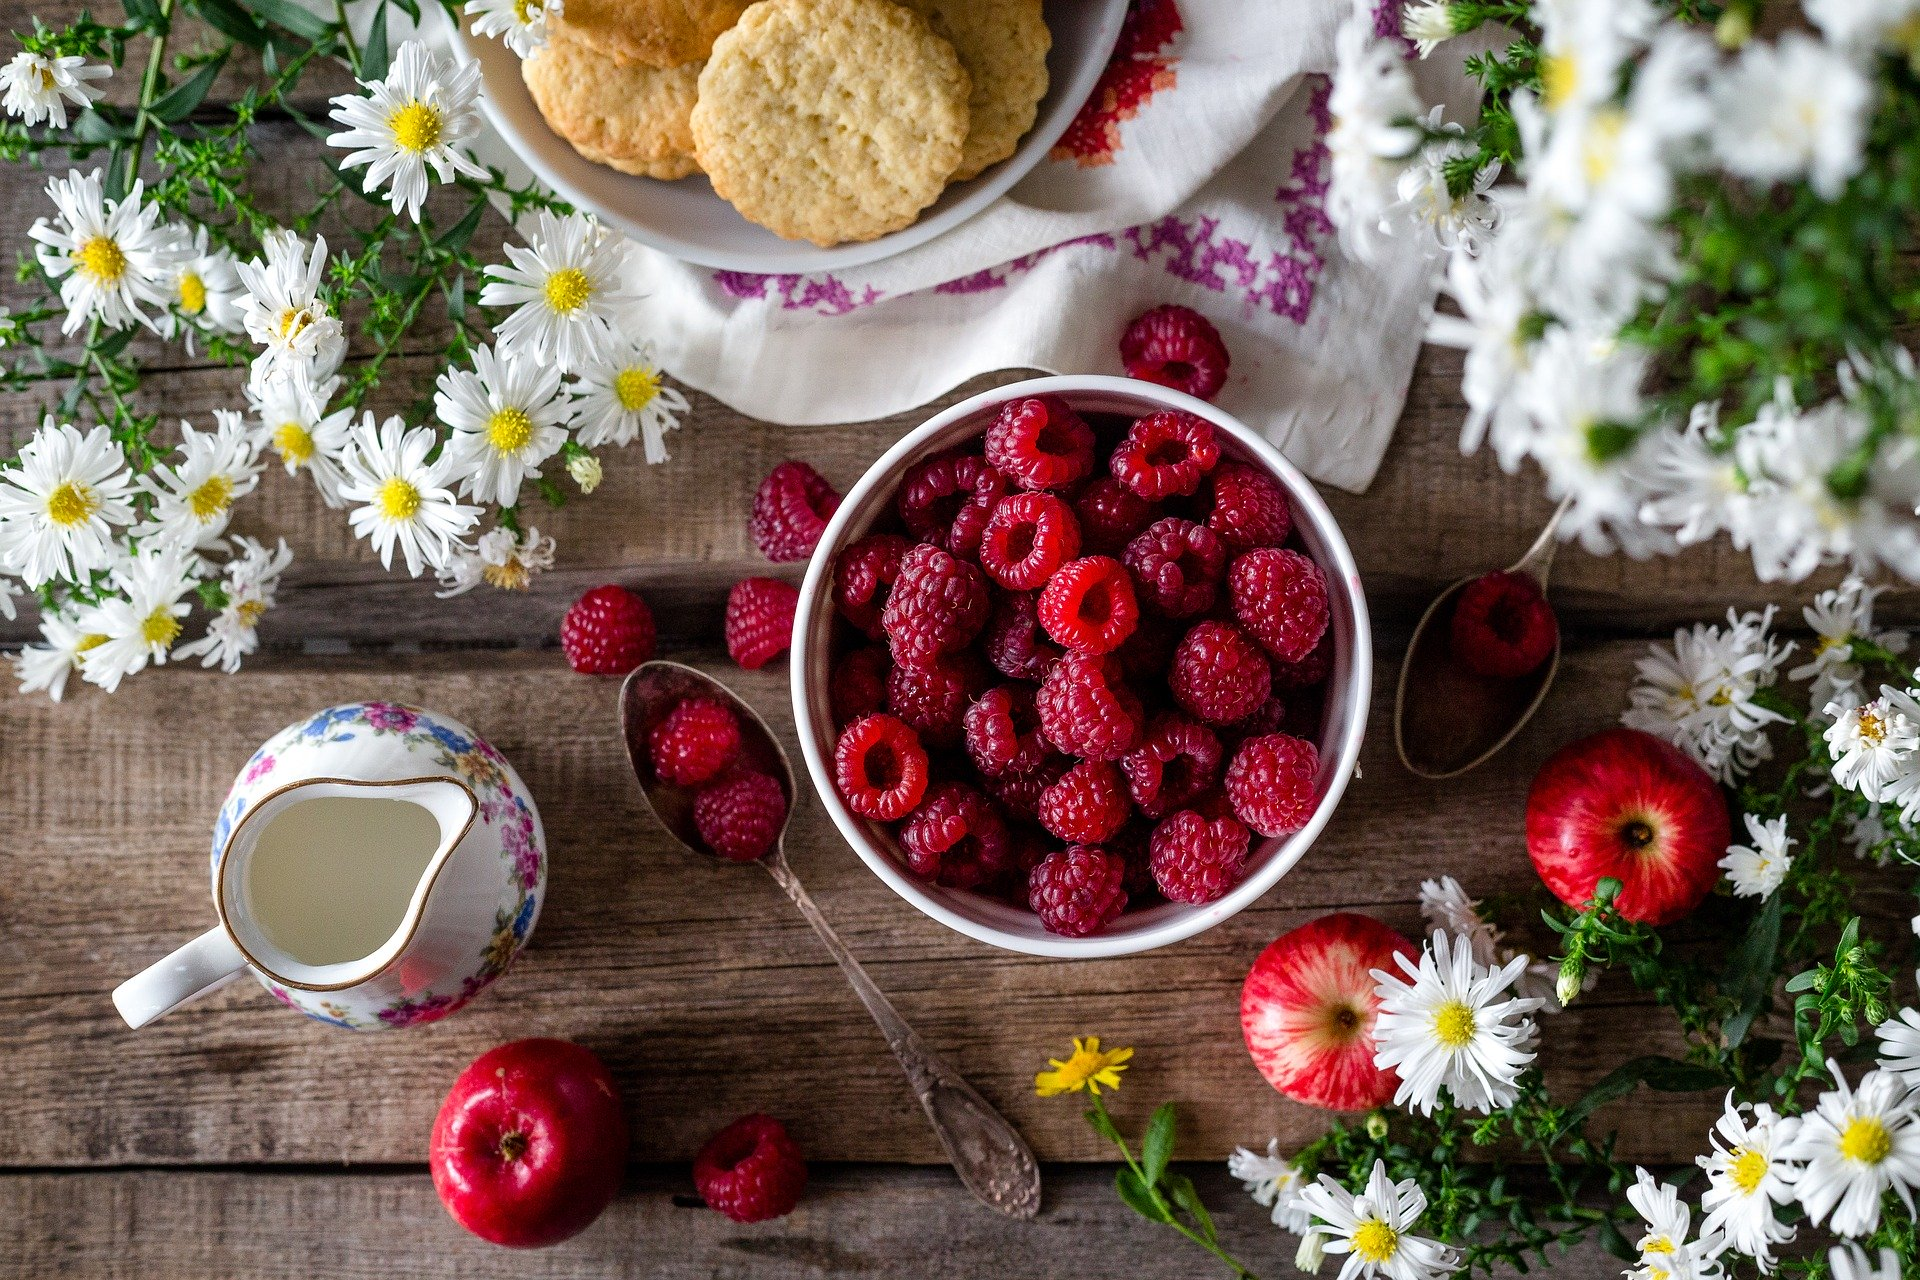 Raspberries and scones with cream